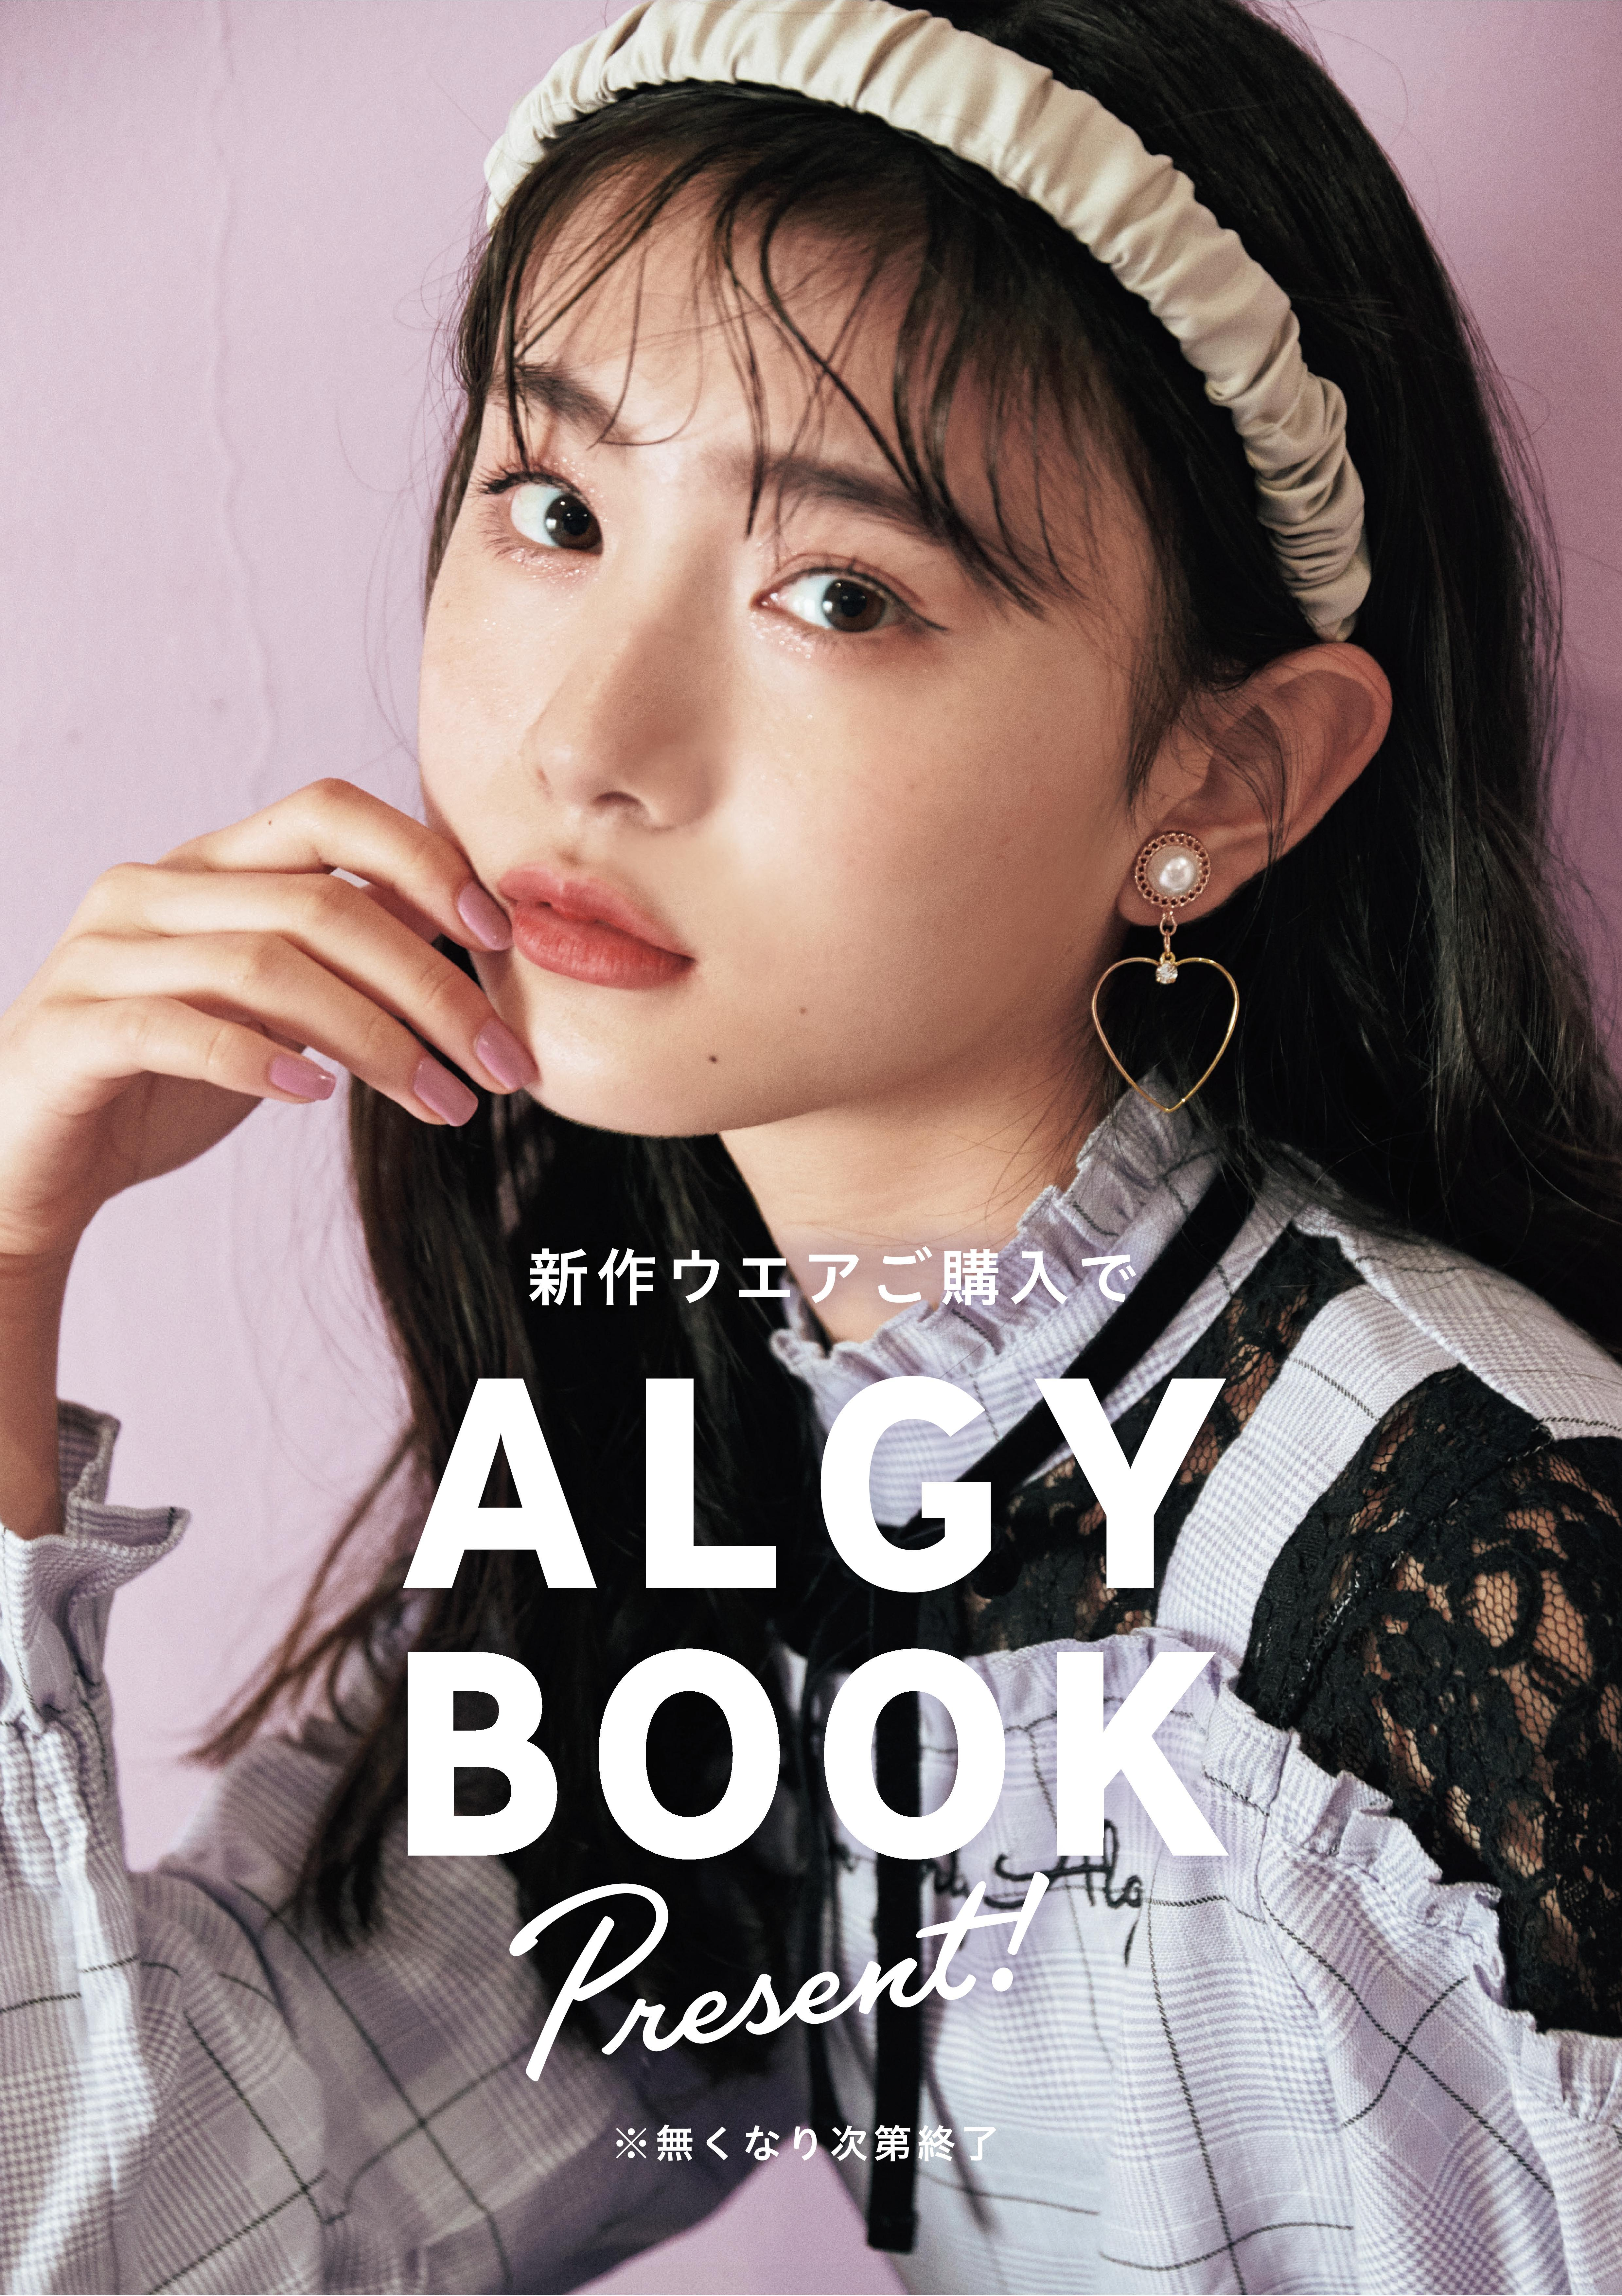 『Lady up ALGY』へアップデート♪